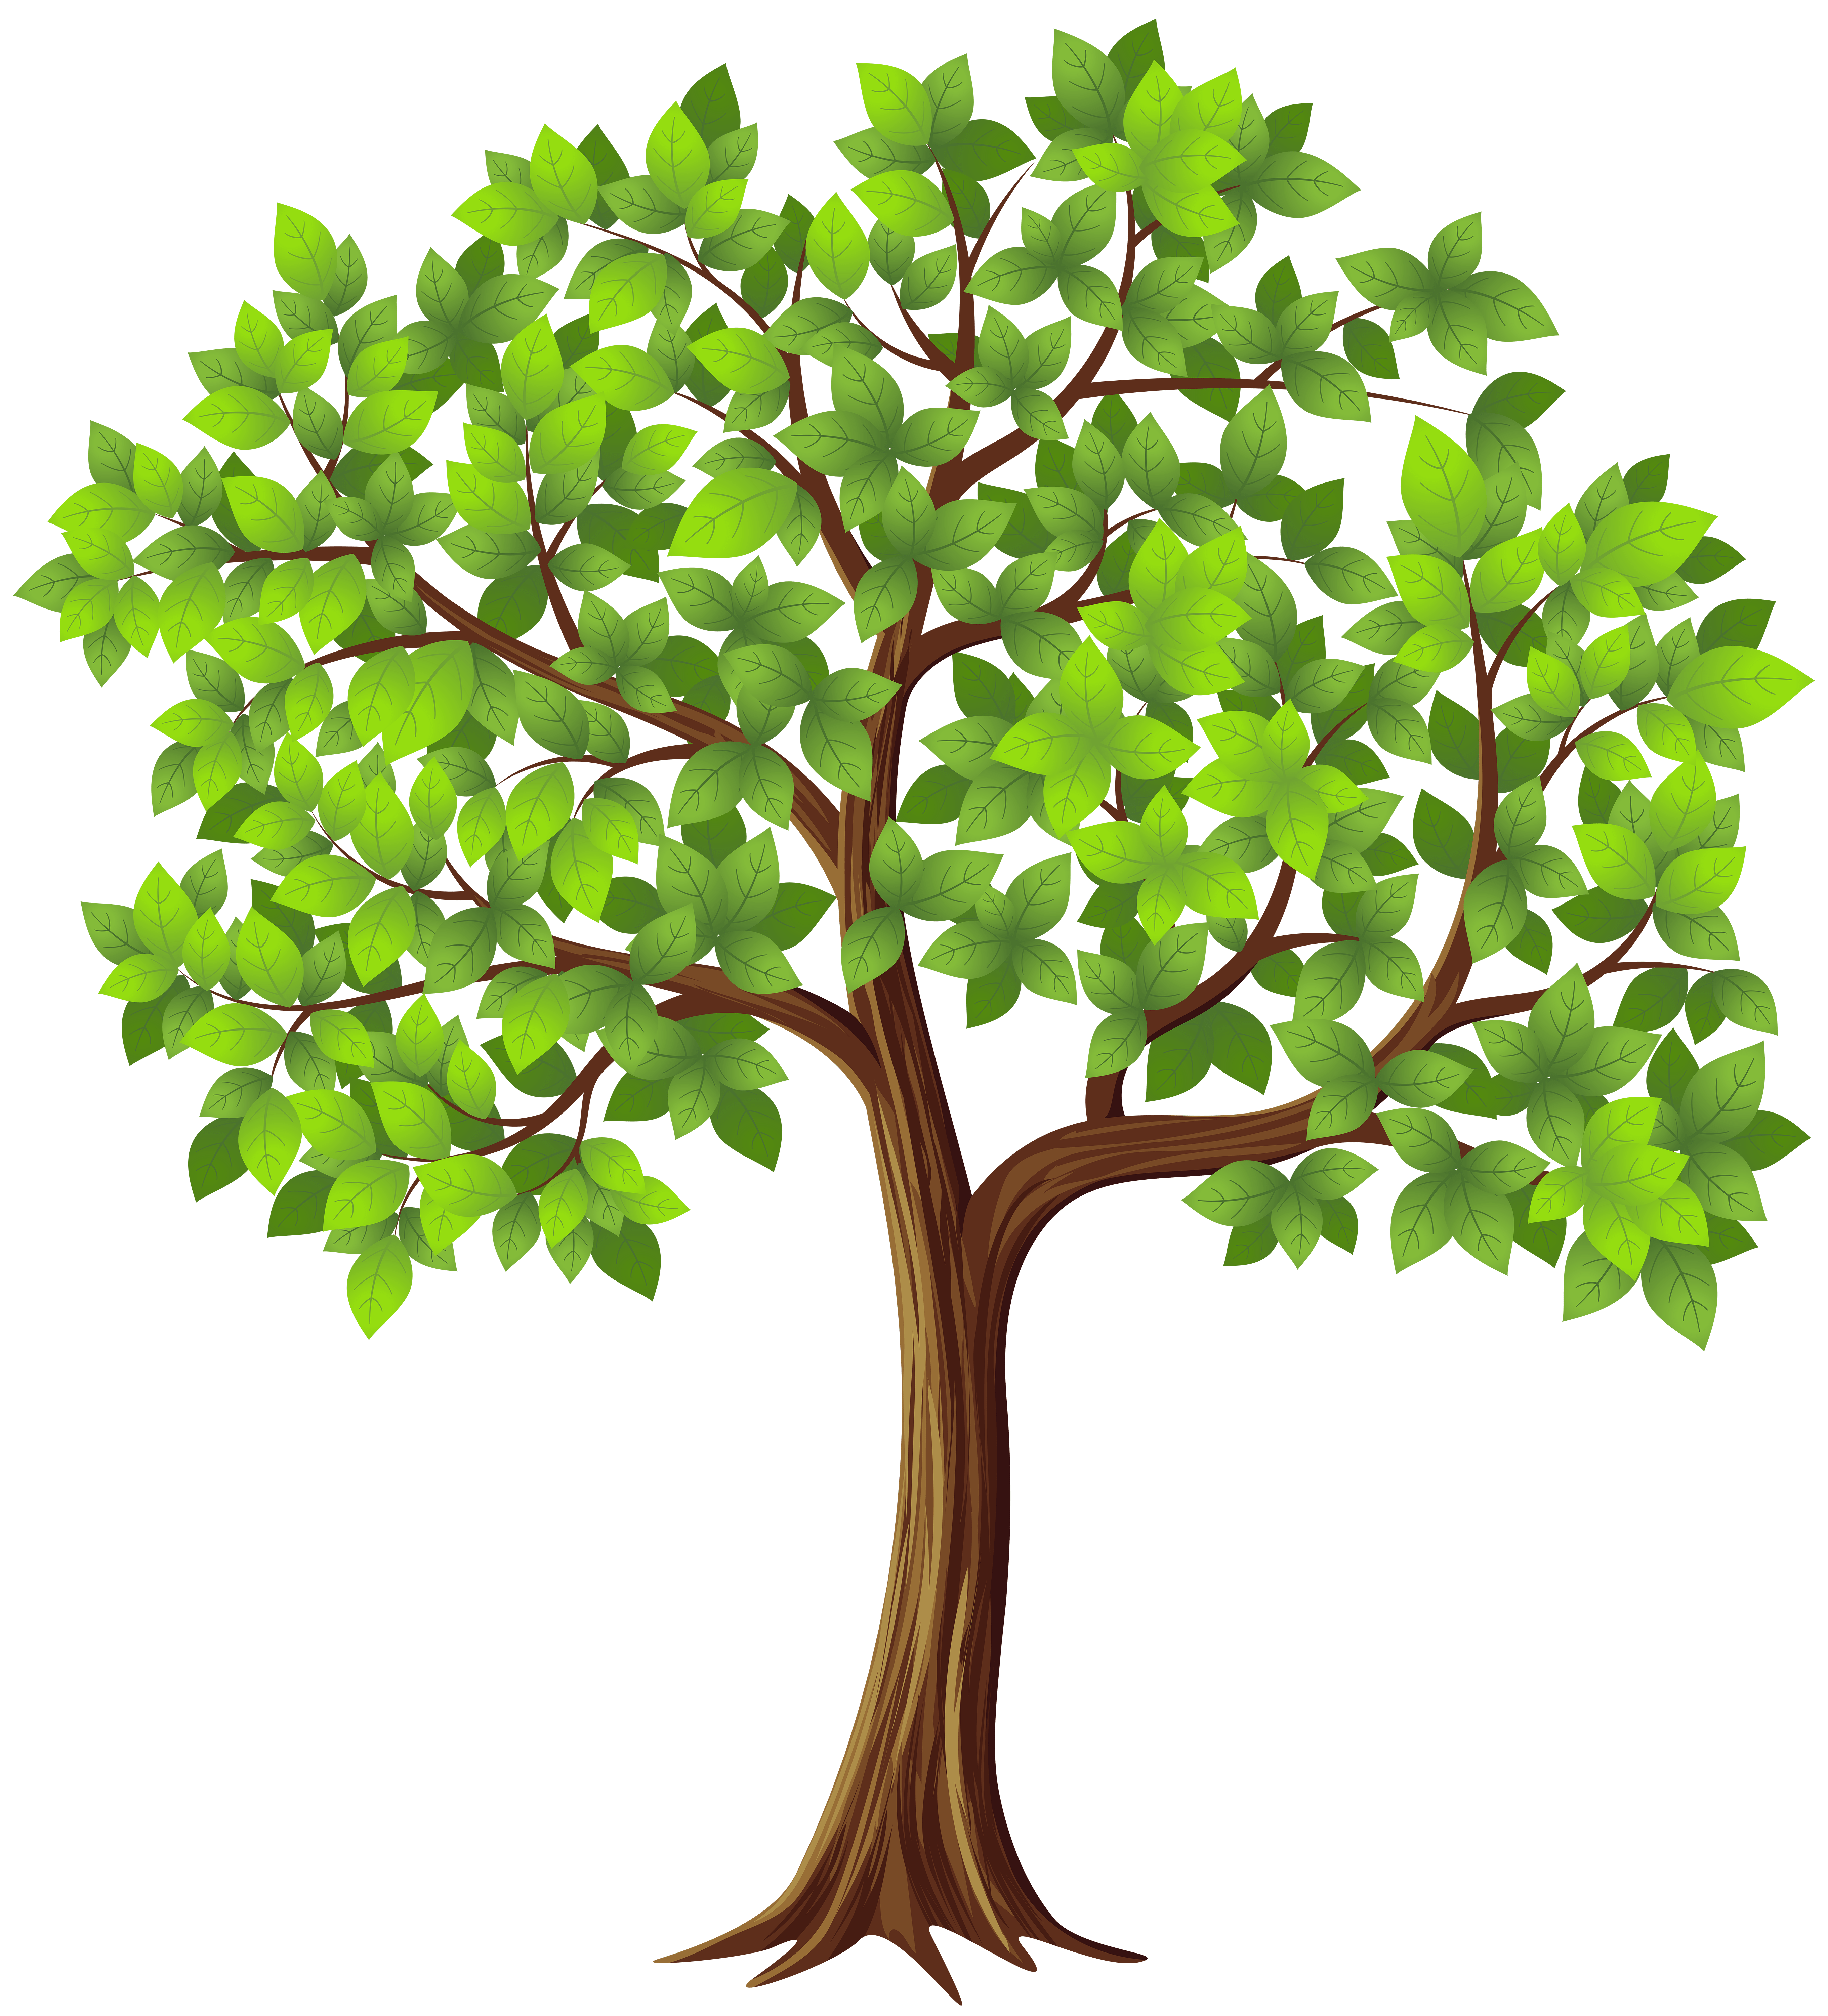 hight resolution of tree png transparent clip art image gallery yopriceville high rh gallery yopriceville com tree clip art free tree clip art from above